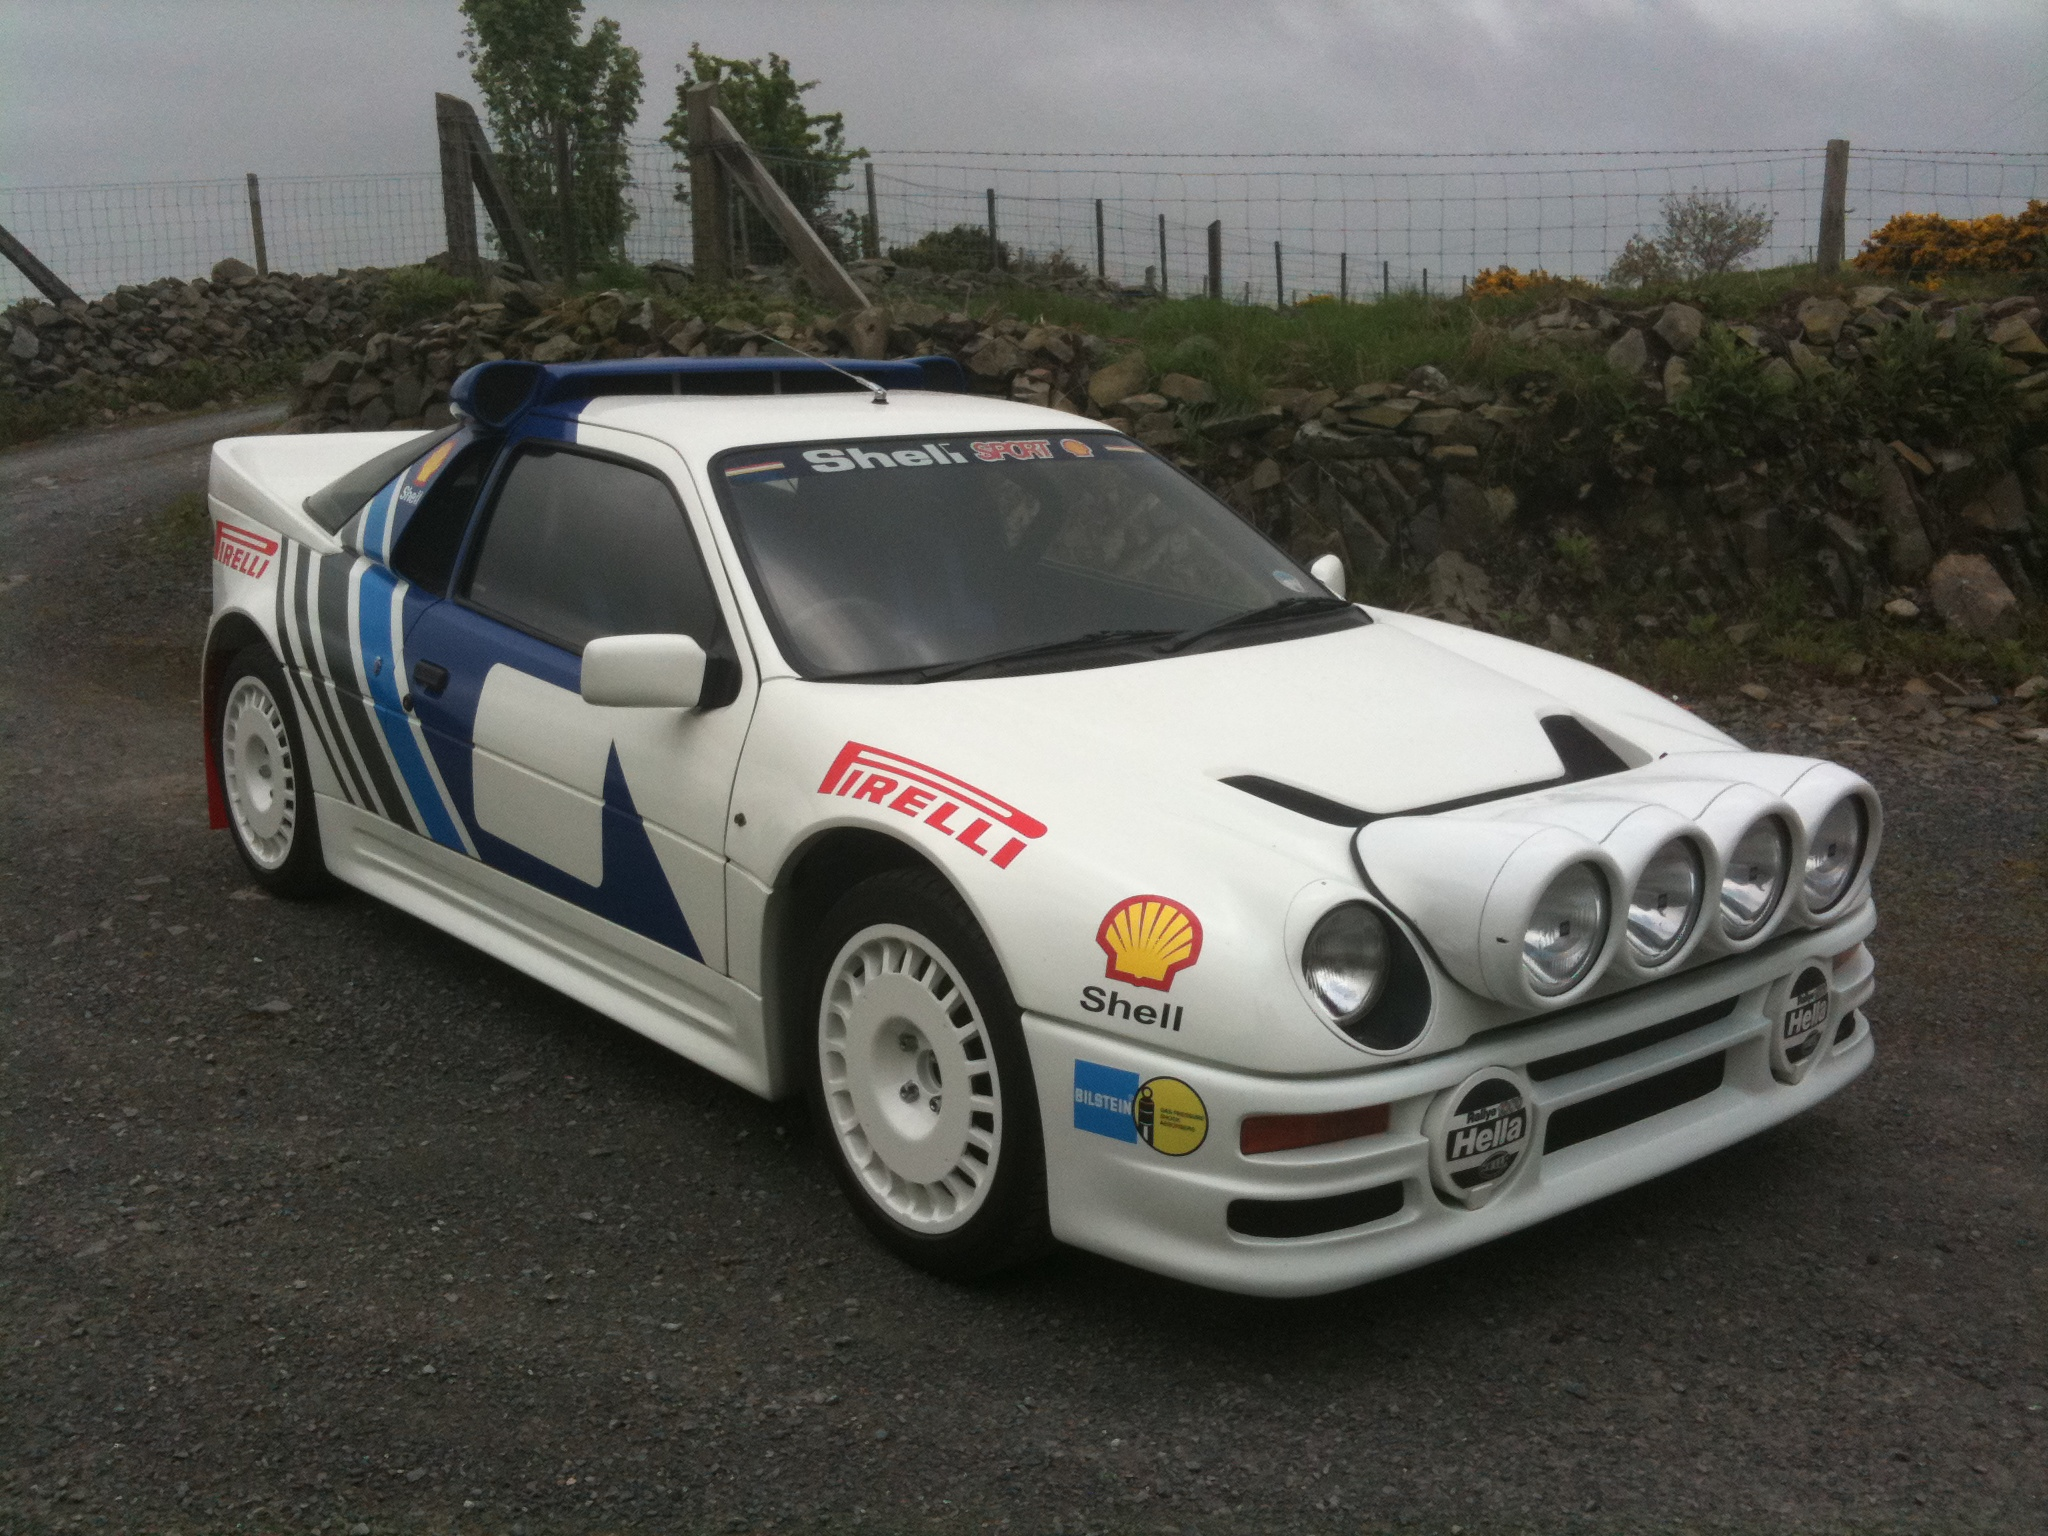 My Ford RS200 replica , with rally livery